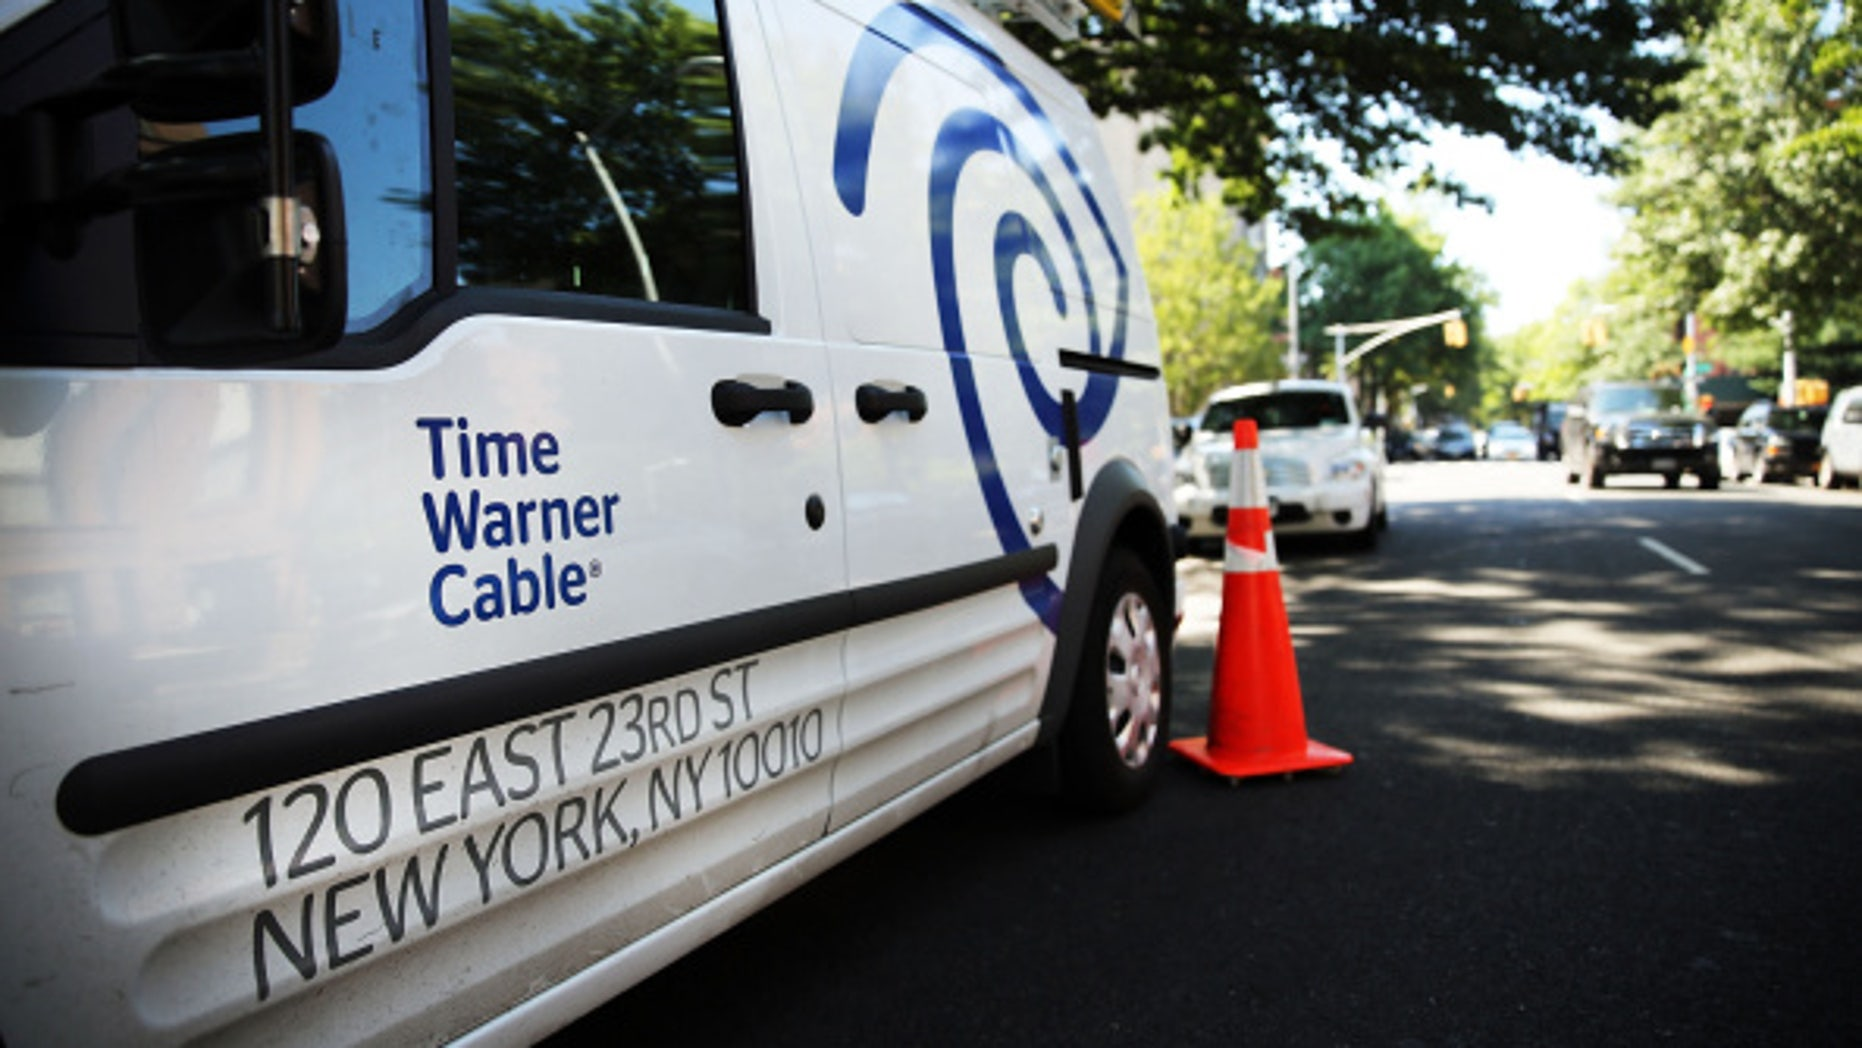 NEW YORK, NY - AUGUST 27:  A Time Warner Cable truck is viewed in Brooklyn on August 27, 2014 in New York City.  Time Warner Cable, which has 11.4 million subscribers in the United States, suffered a massive power outage Wednesday morning across the nation. While customers appeared to have power back by mid-morning, thousands had lost internet service for the duration of the outage. In a deal that is valued at $45.2 billion, Time Warner Cable is attempting to merge with Comcast.  (Photo by Spencer Platt/Getty Images)